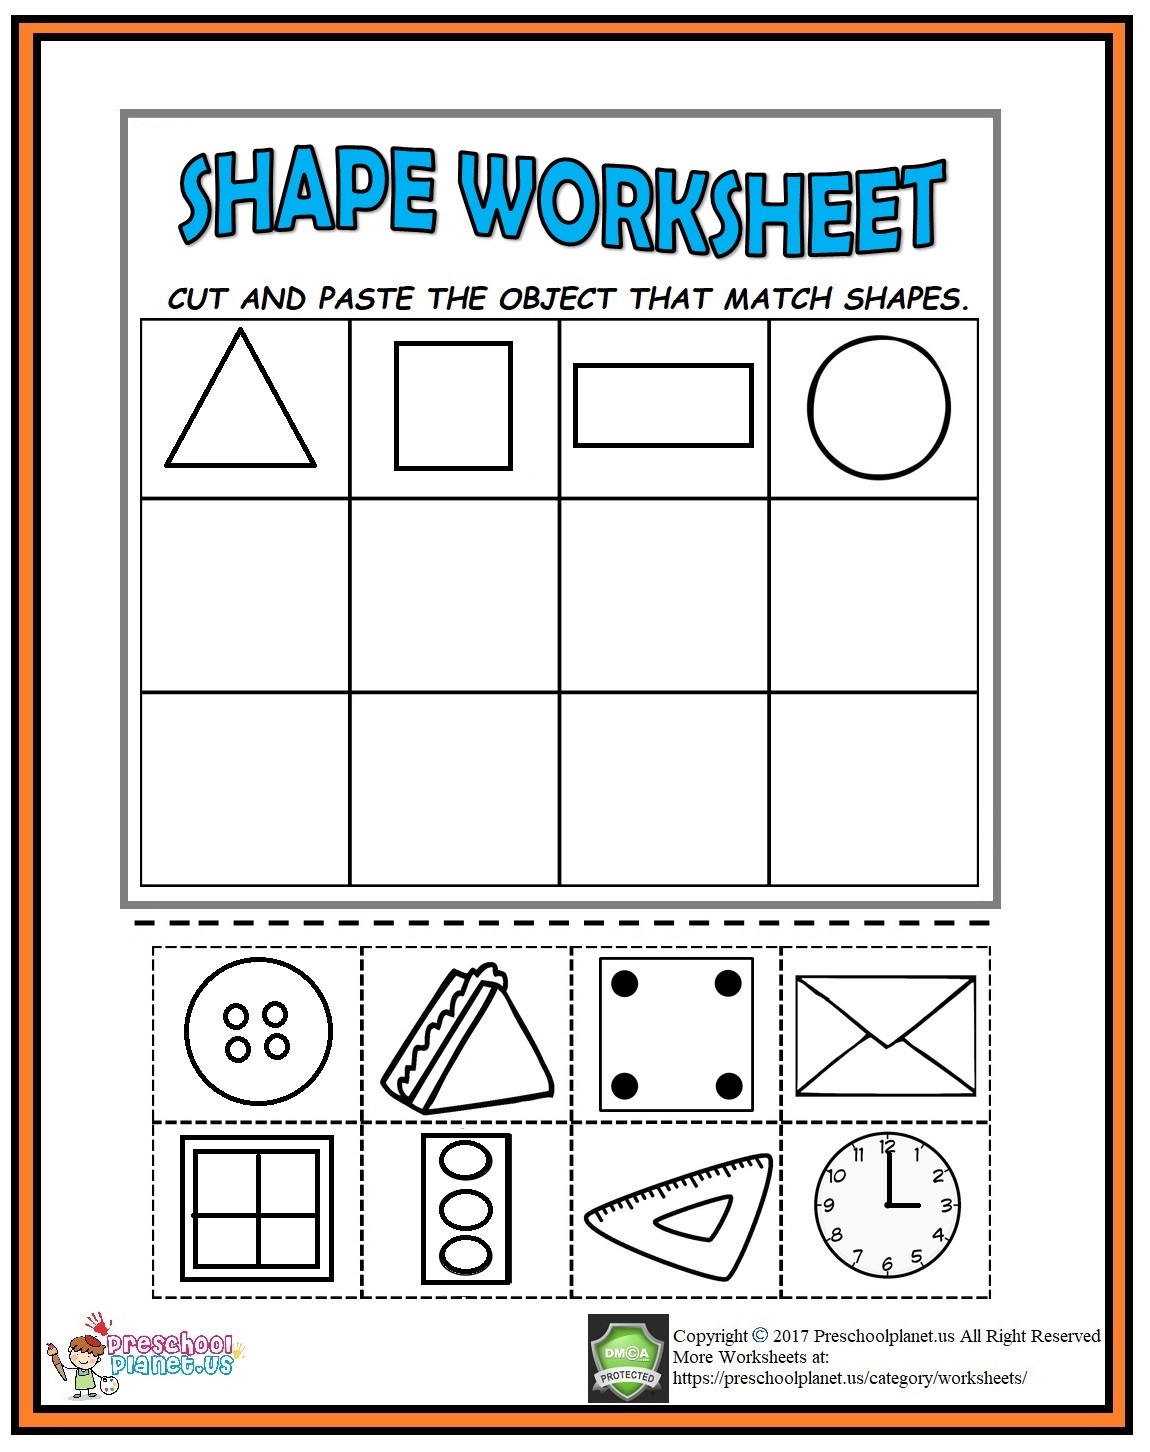 Printable Cut and Paste Worksheets Cut and Paste Shape Worksheet – Preschoolplanet